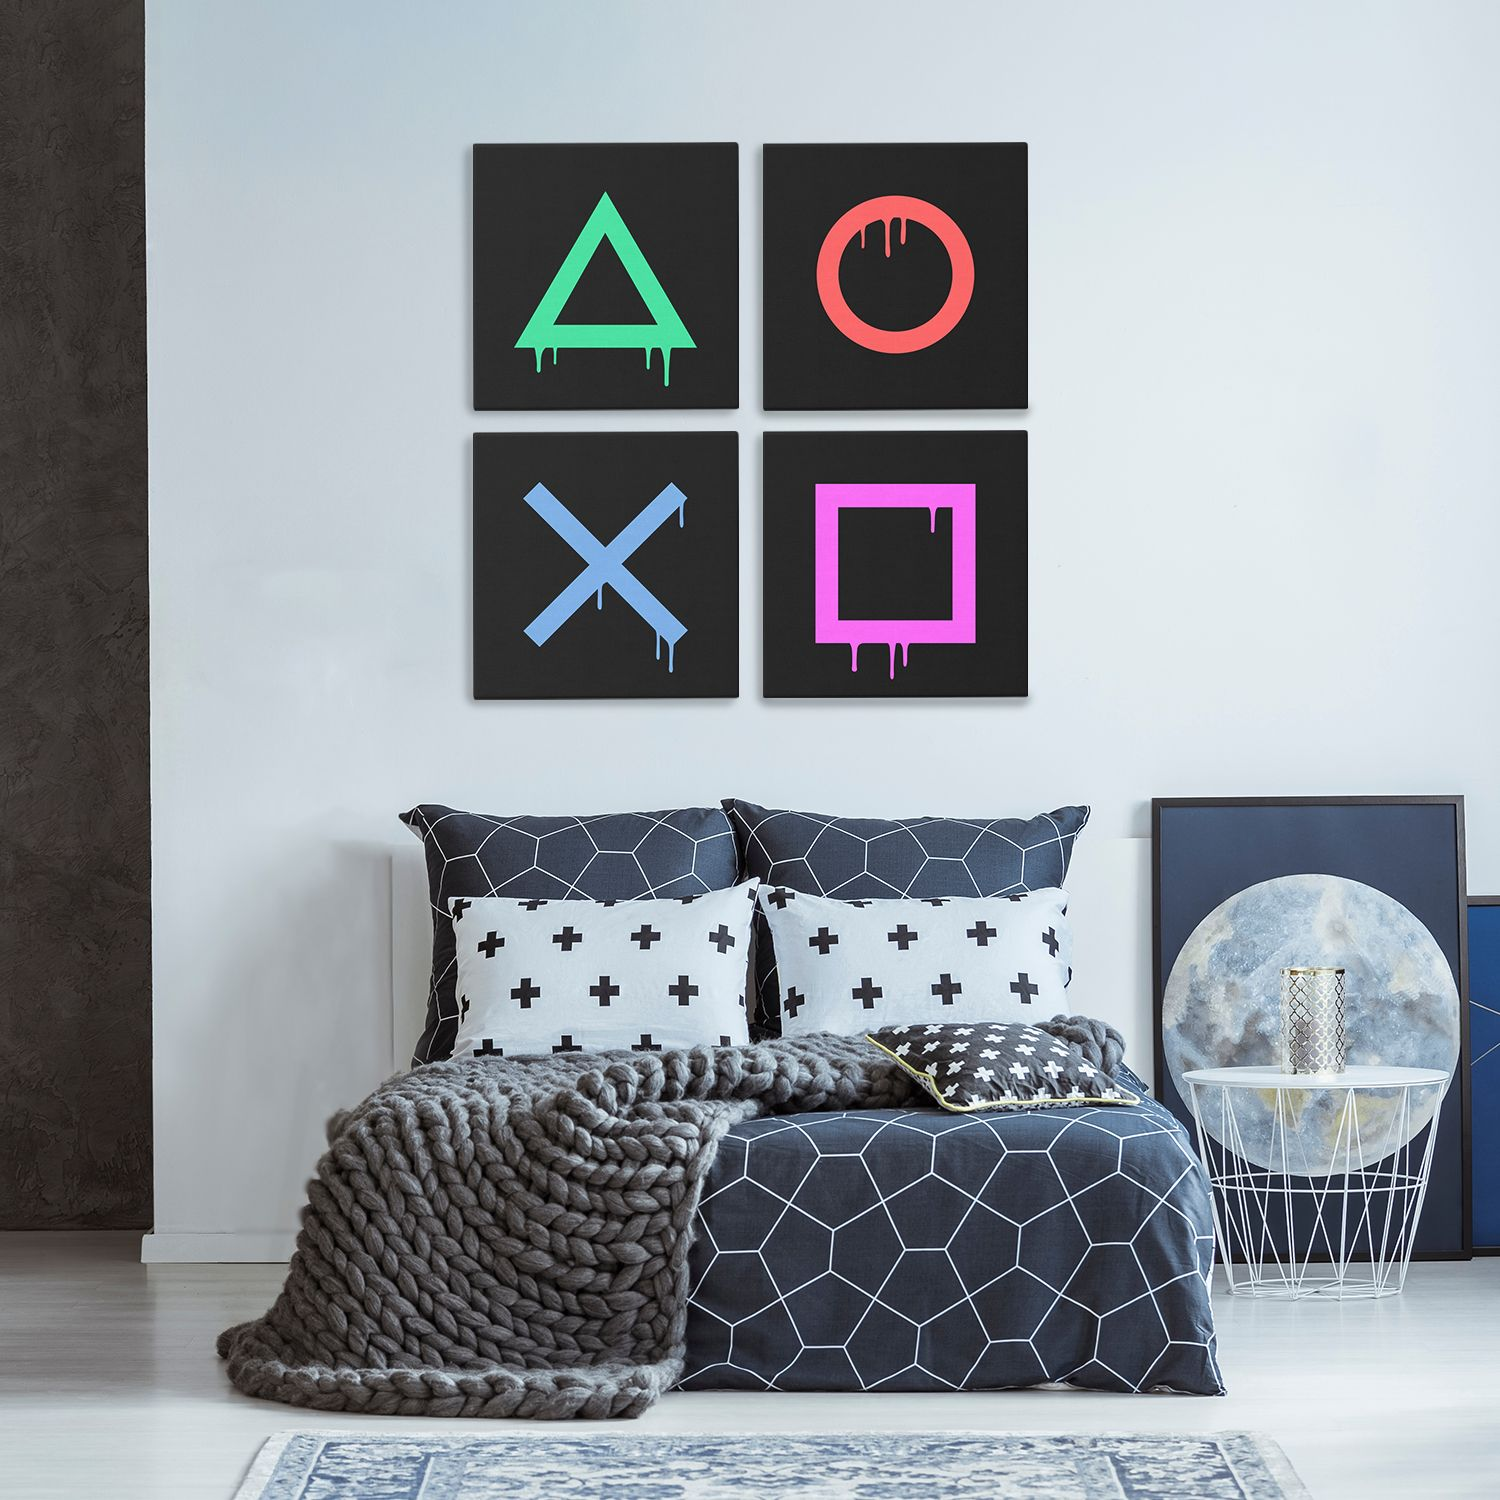 Playstation Buttons Game Room Canvas Wall Art In 2021 Playstation Room Game Room Decor Video Game Room Decor